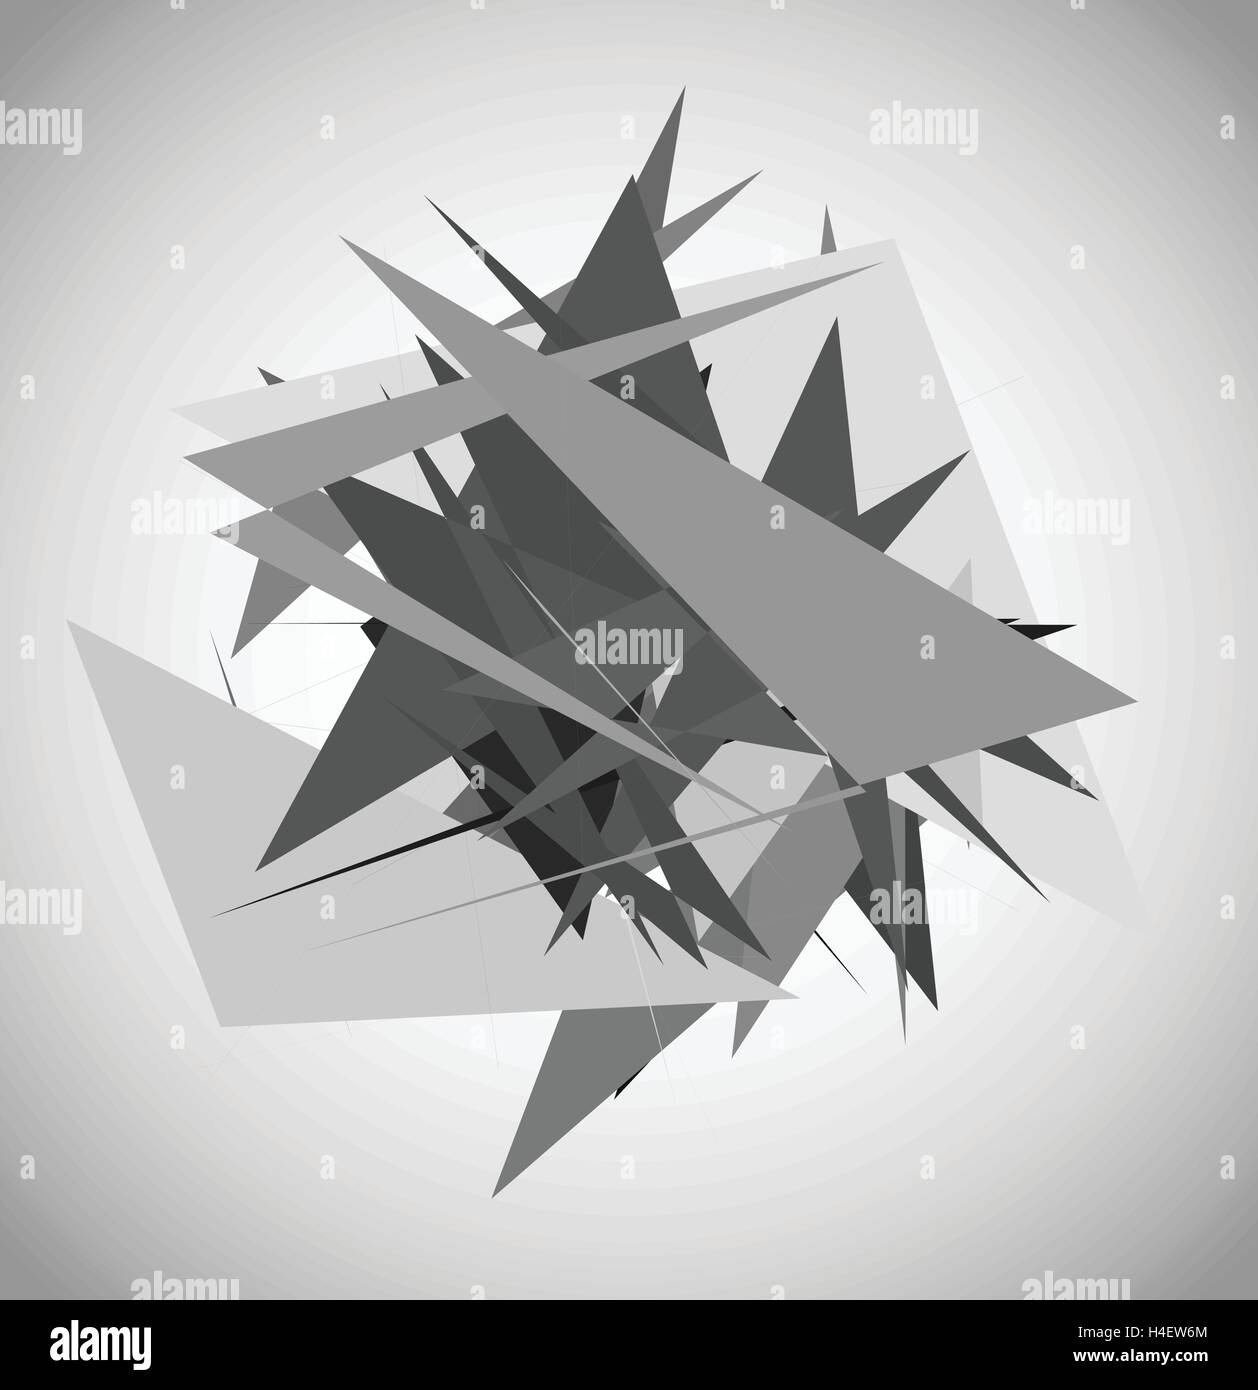 Abstract geometric art with random, unsettled edgy shapes - Stock Vector